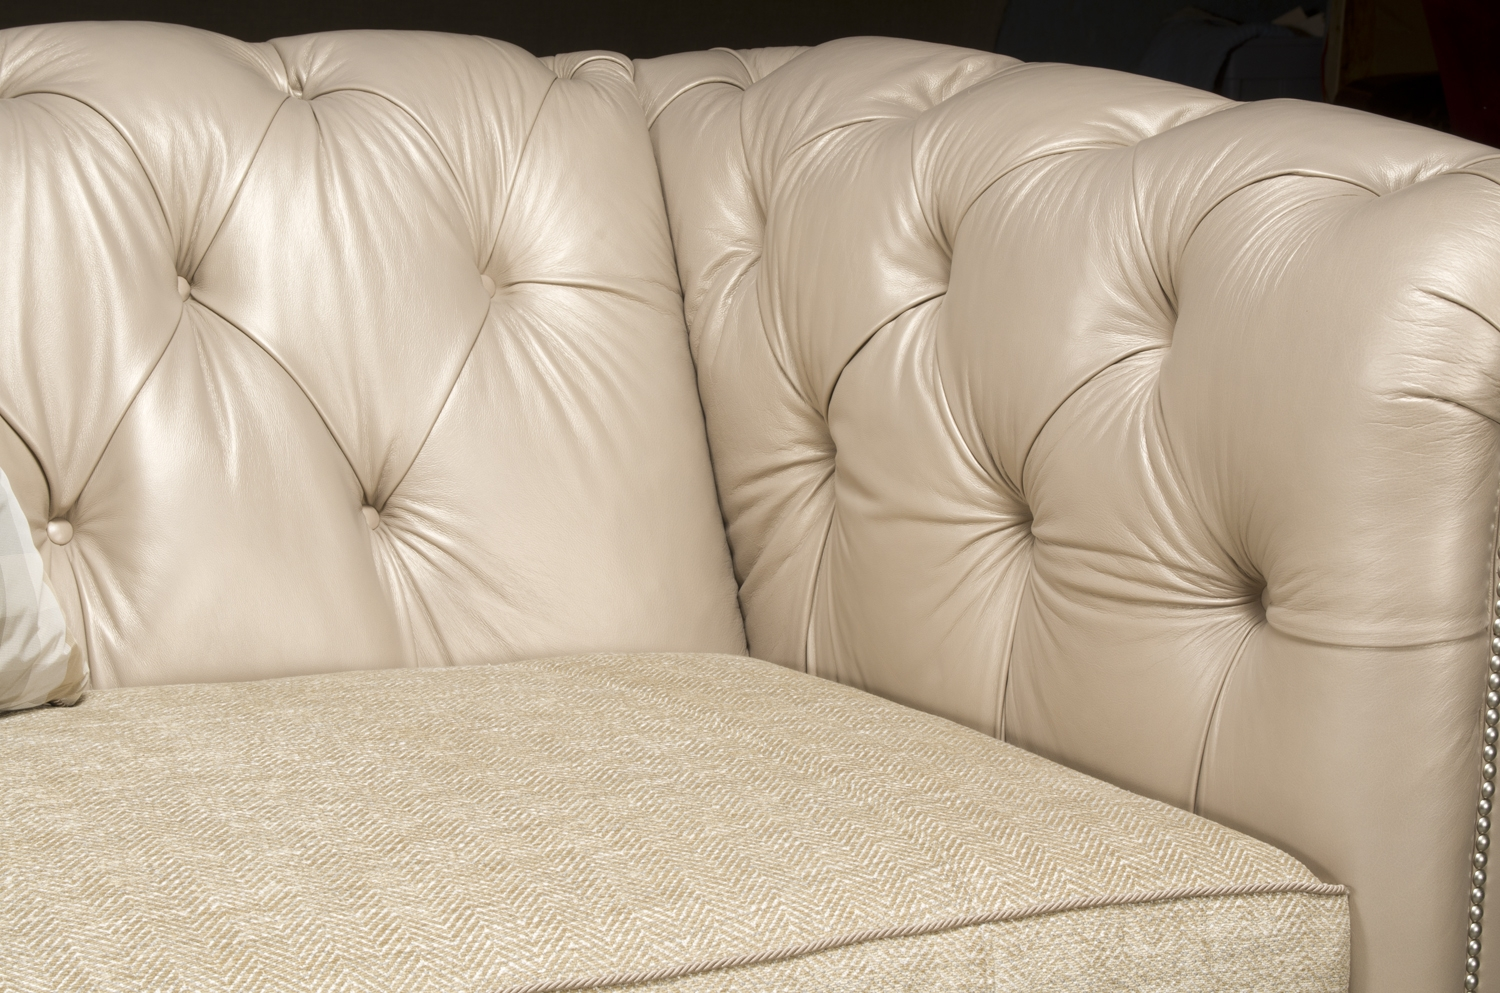 Chesterfield Tufted Sofa, High End Upholstered Furniture